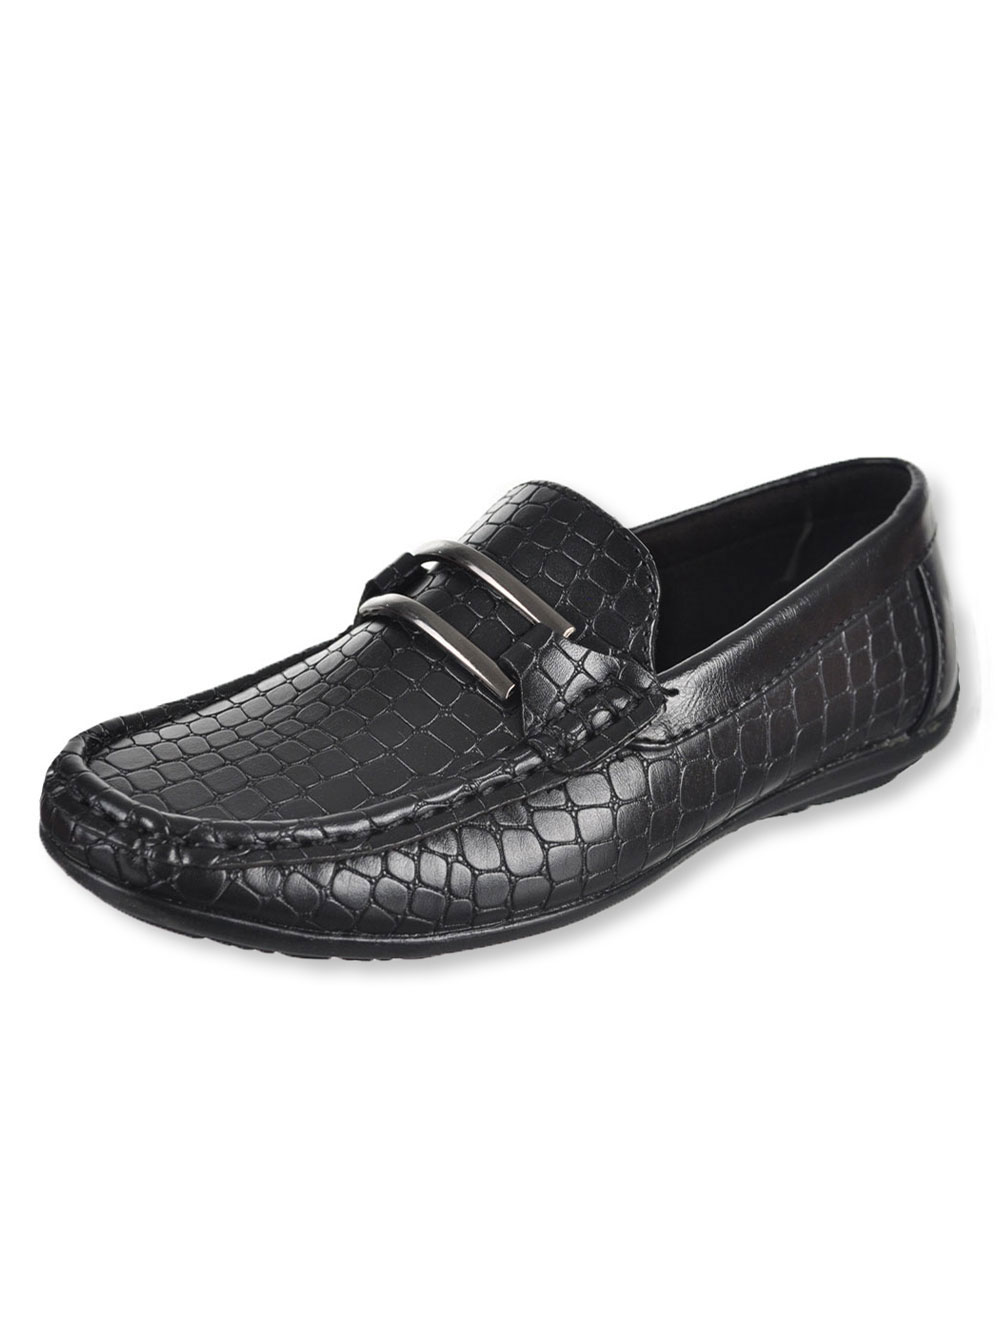 Boys' T-Buckle Loafers